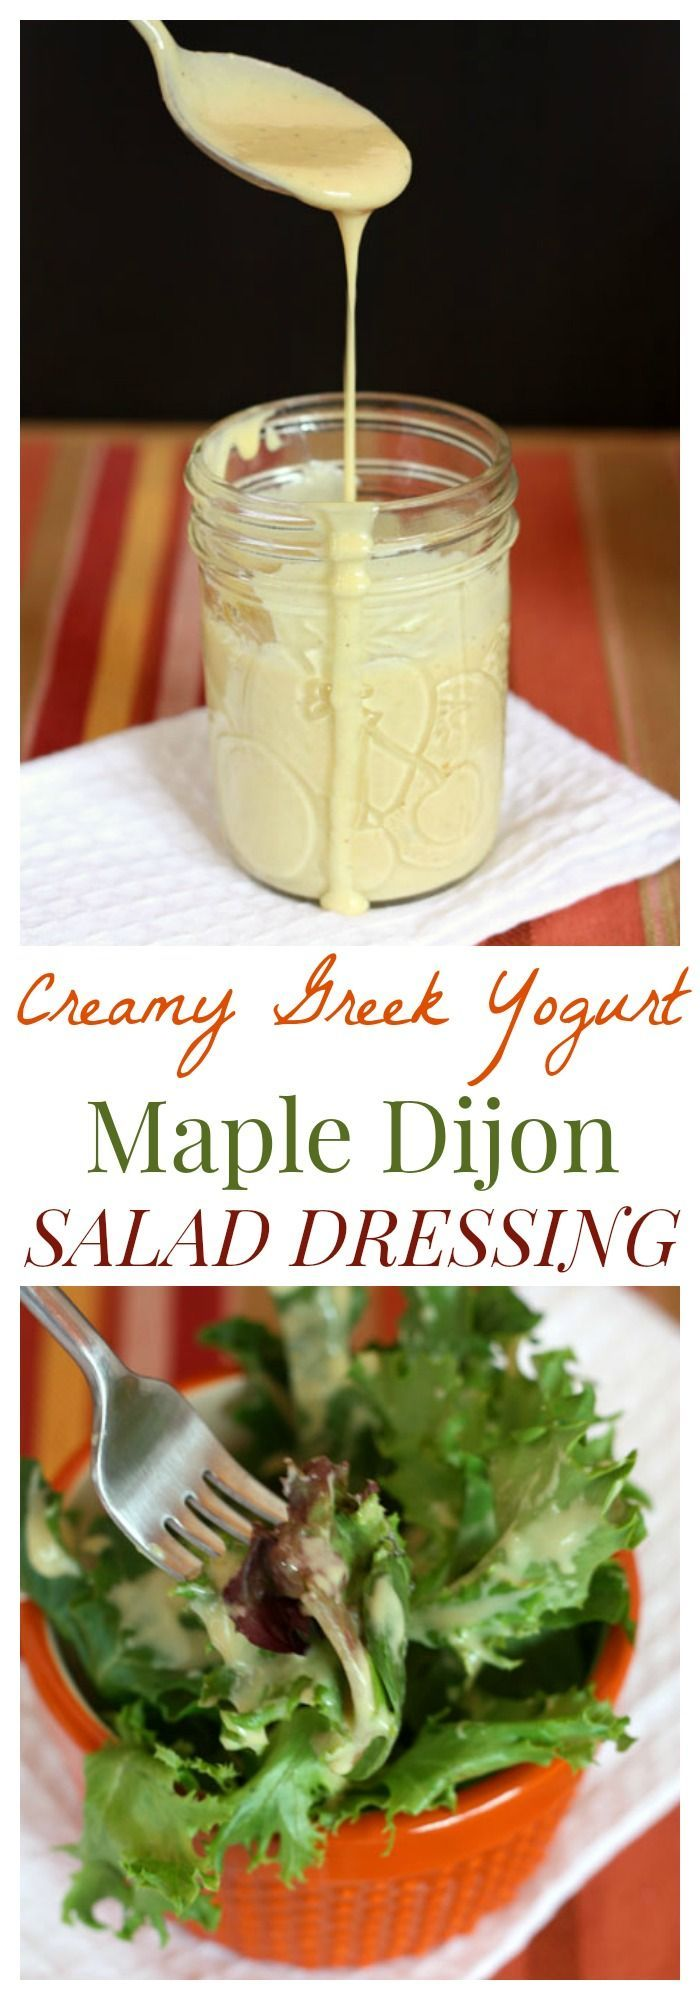 Creamy Maple Dijon Greek Yogurt Salad Dressing - it's so easy to make your own rich, creamy but still light and healthy dressing | cupcakesandkalechips.com | gluten free recipe